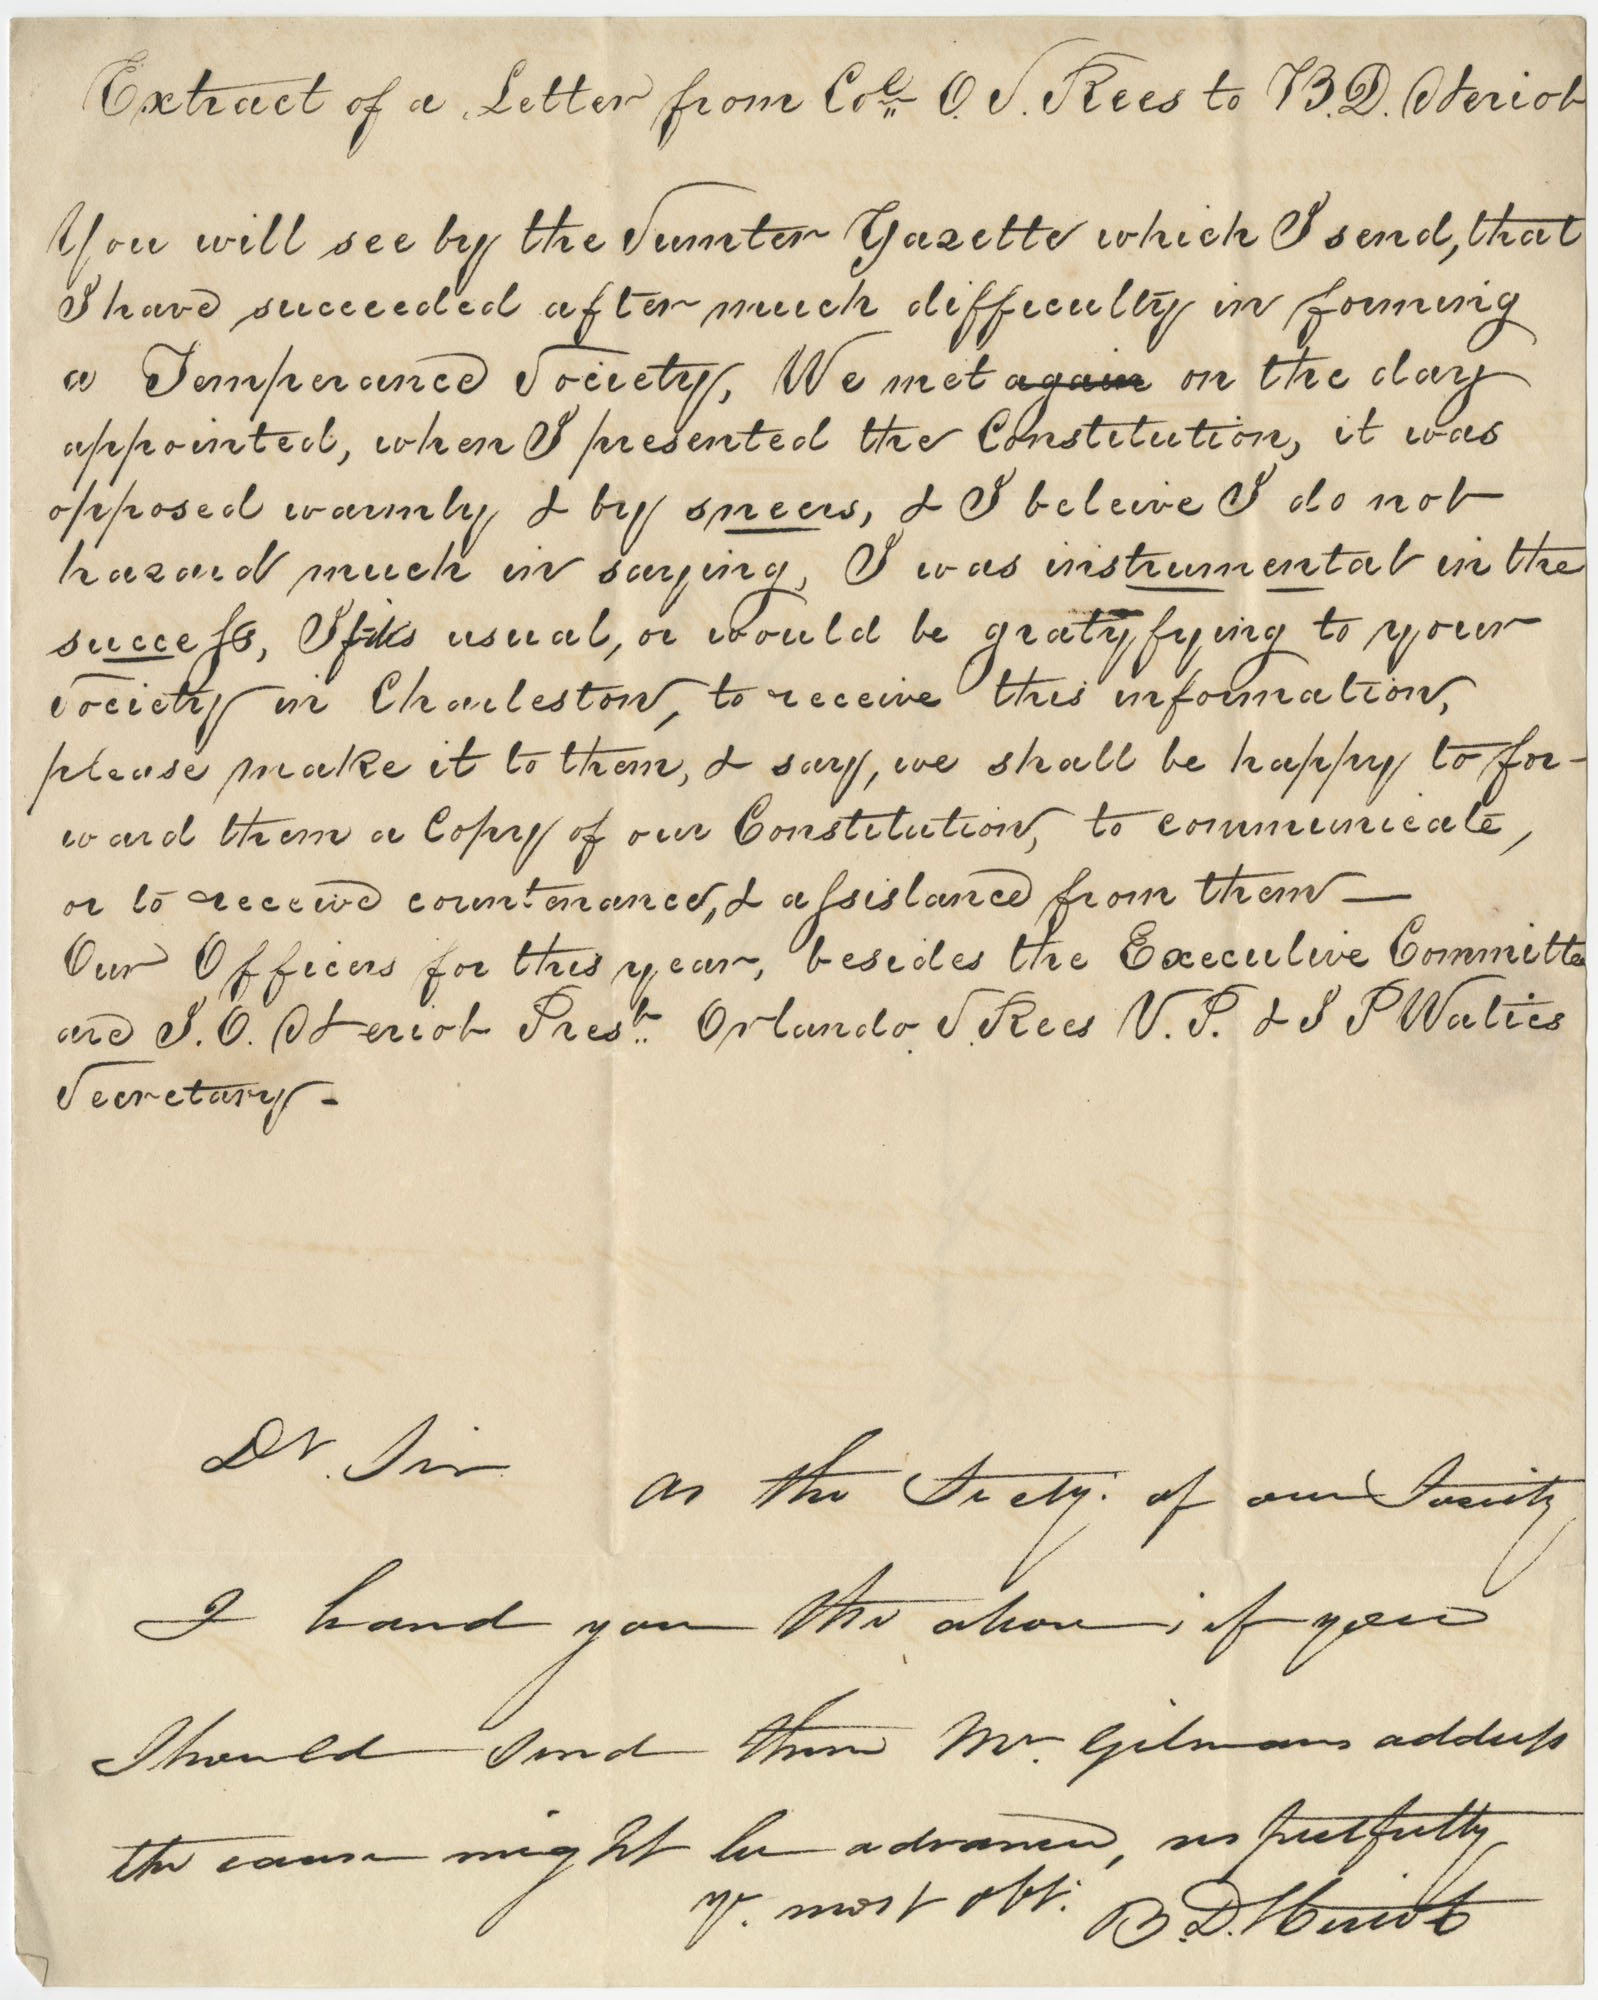 Extract of a letter from Colonel O.J. Rees to B.D. Steriot sent to Thomas S. Grimke via Steriot, undated